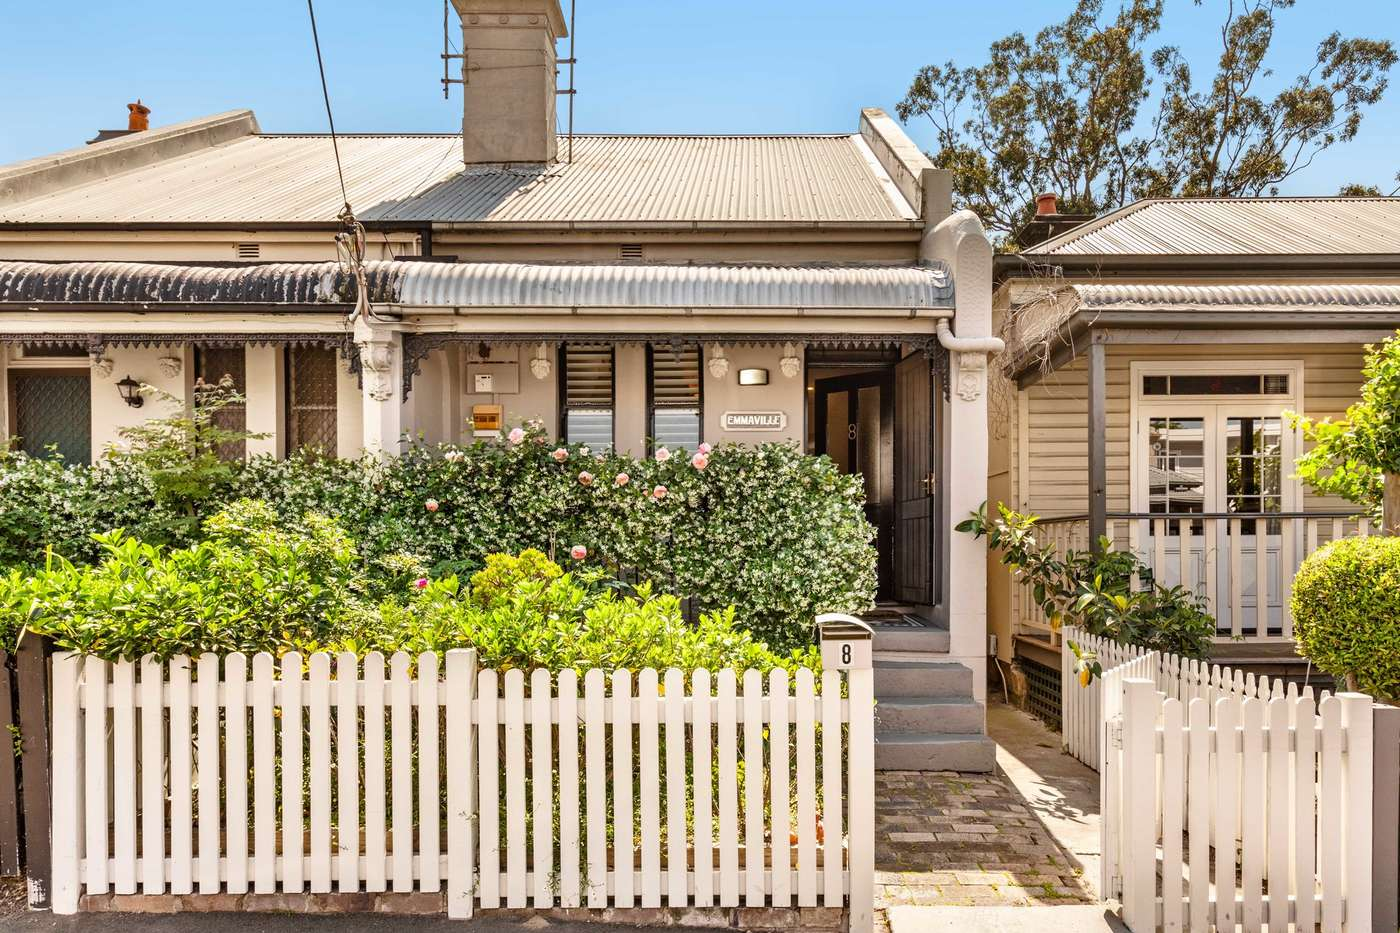 Main view of Homely house listing, 8 Belmore Street, Rozelle, NSW 2039